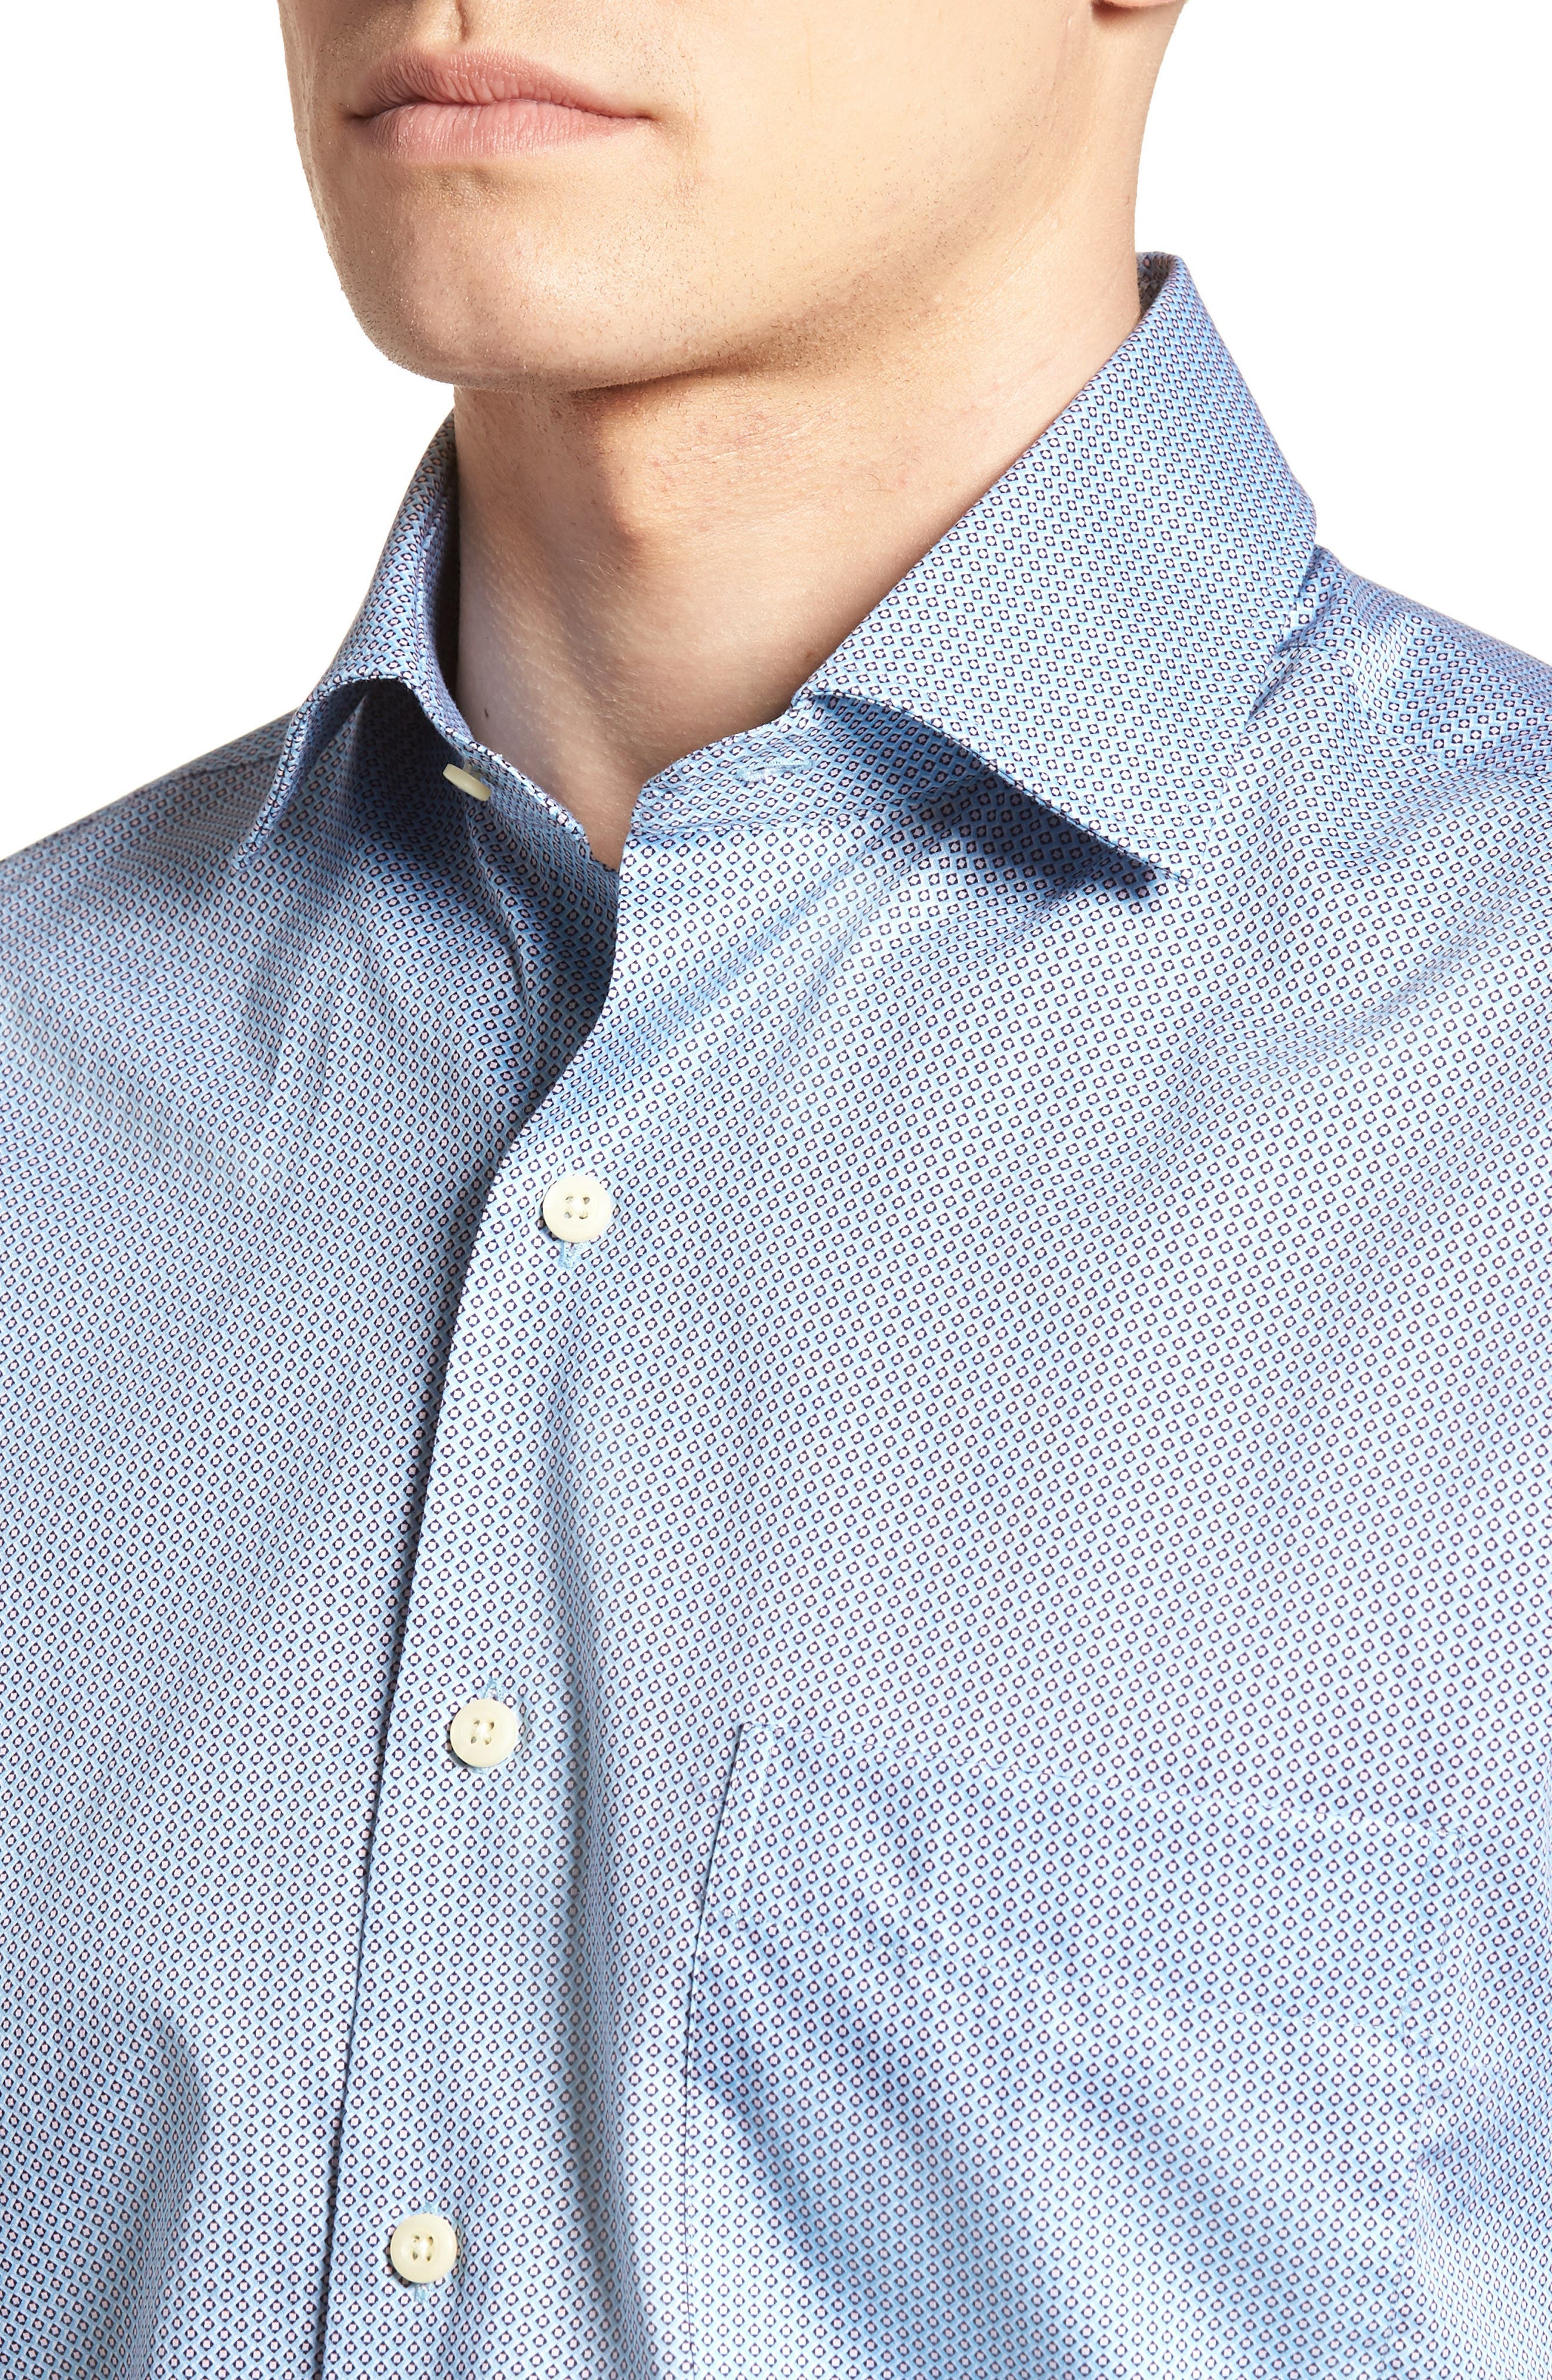 Geo Petal Sport Shirt,                             Alternate thumbnail 4, color,                             GROTTO BLUE